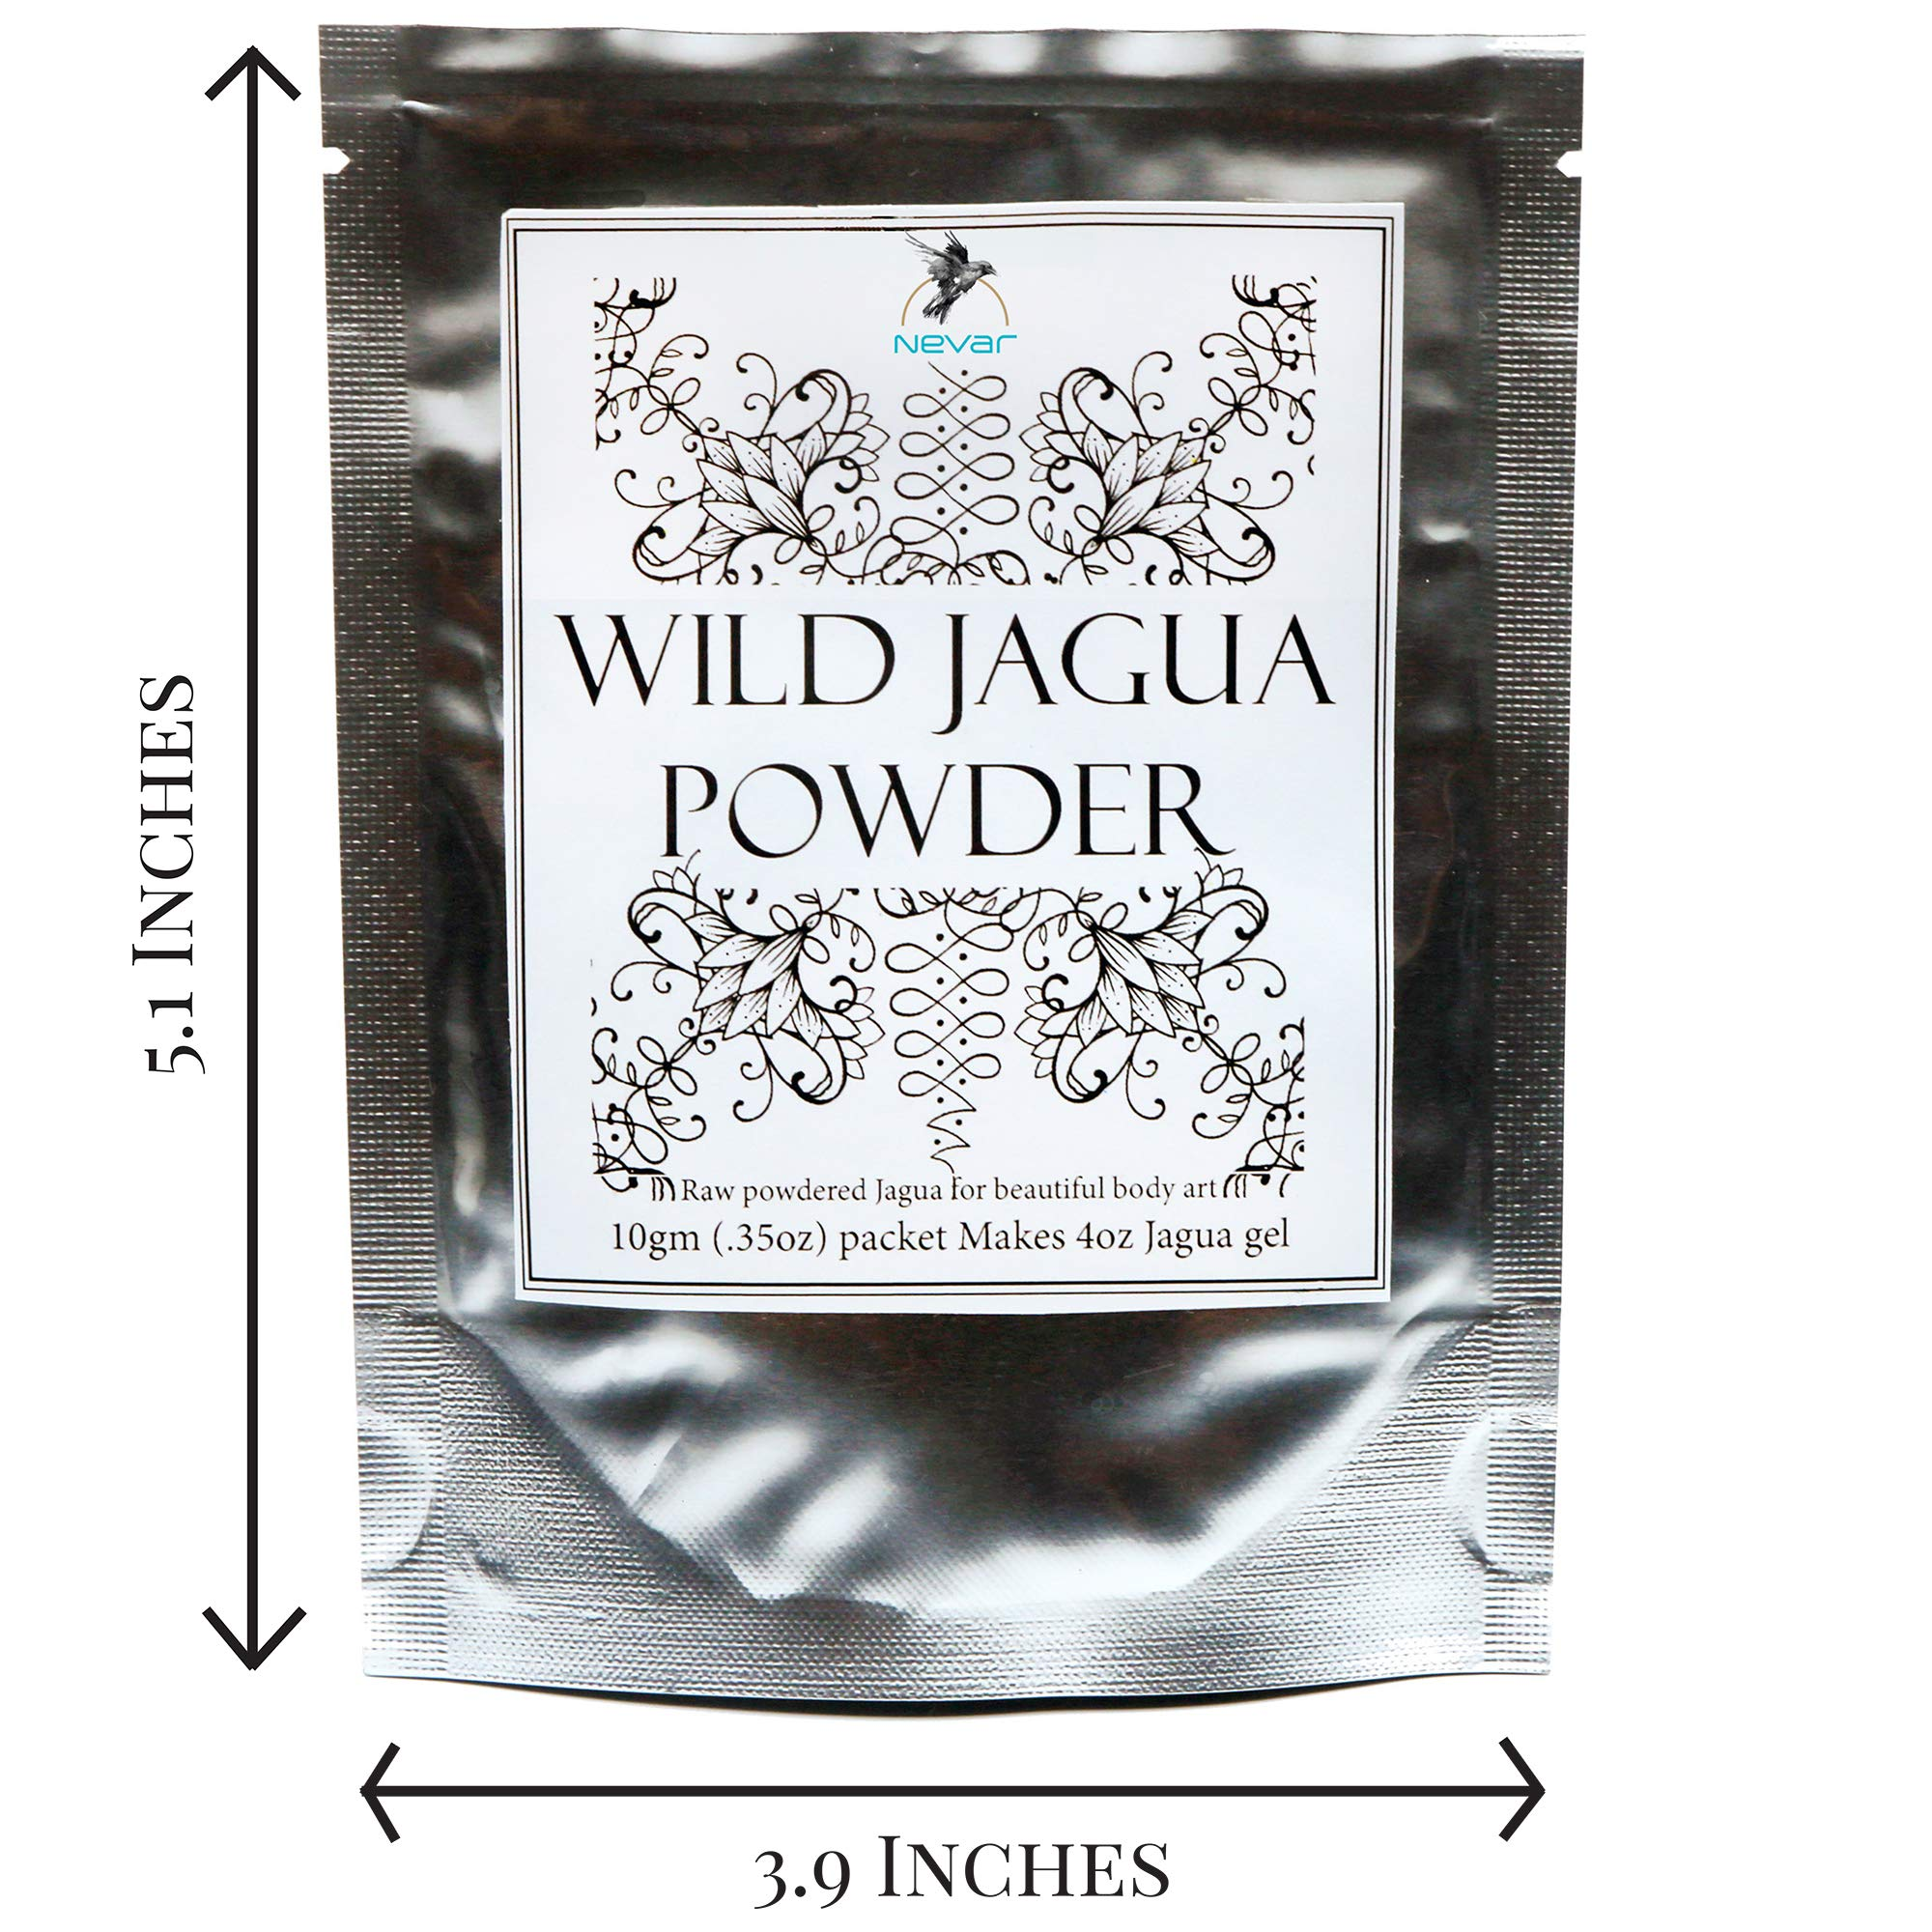 Premium Raw Jagua (Genipa americana extract) Powder-Mix. Makes 4oz Black Gel Ink for Henna-Style Temporary Tattoos. Pure 100% Natural Botanical Ingredients. Vegan. No Chemicals. Safe to Use. by NEVAR